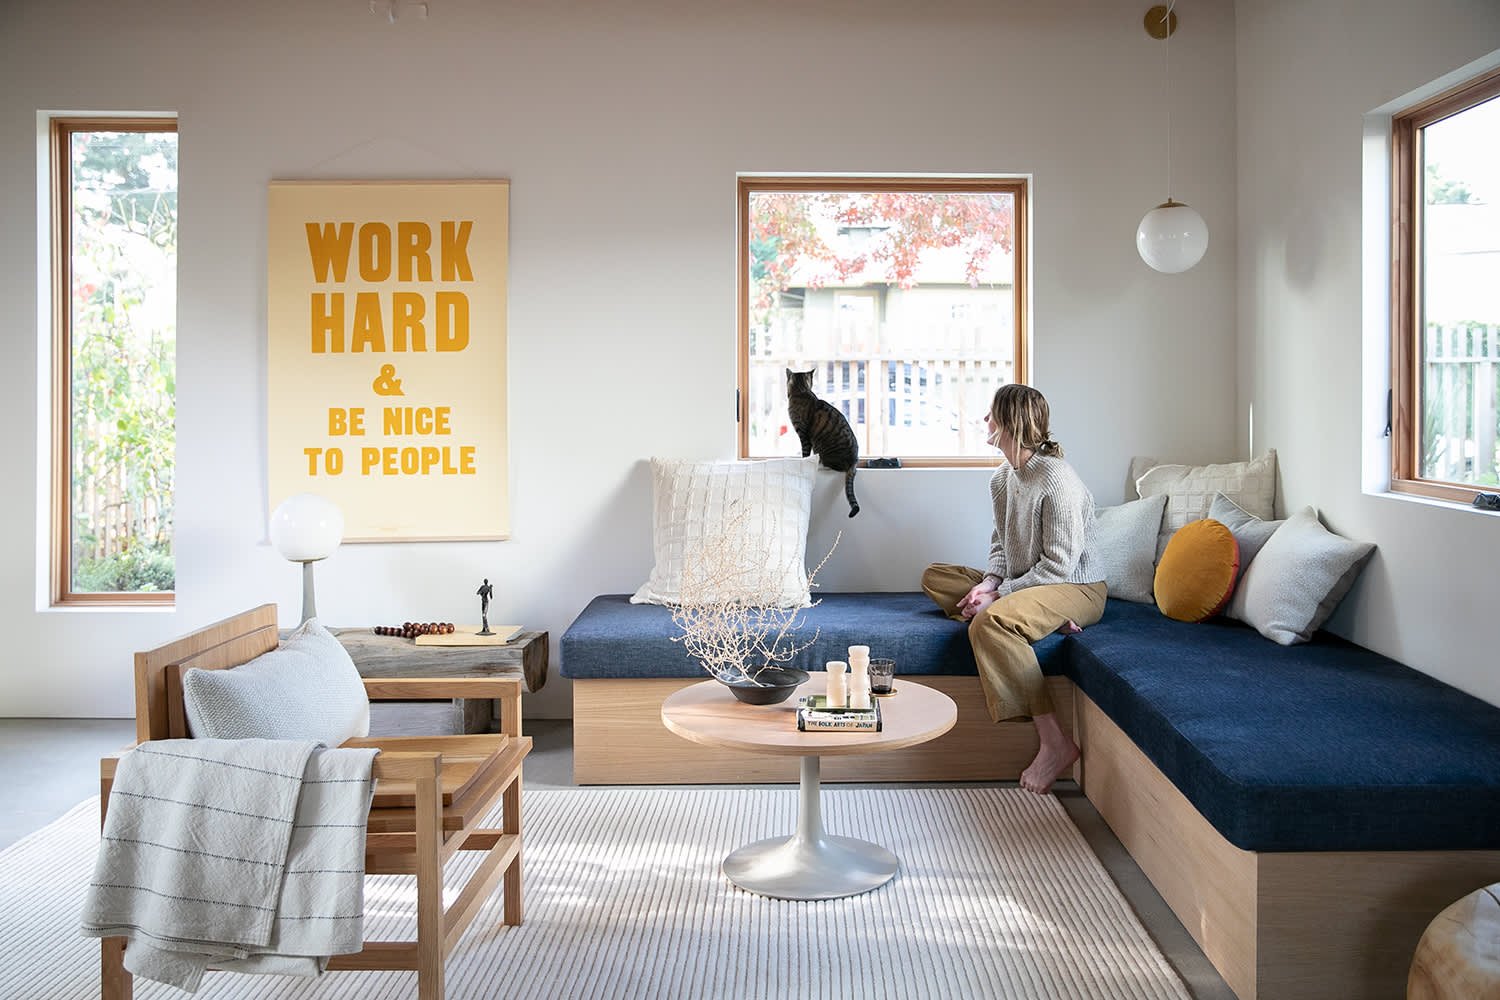 """Schoolhouse Just Released a New Version of Their Iconic """"Work Hard & Be Nice to People"""" Print"""